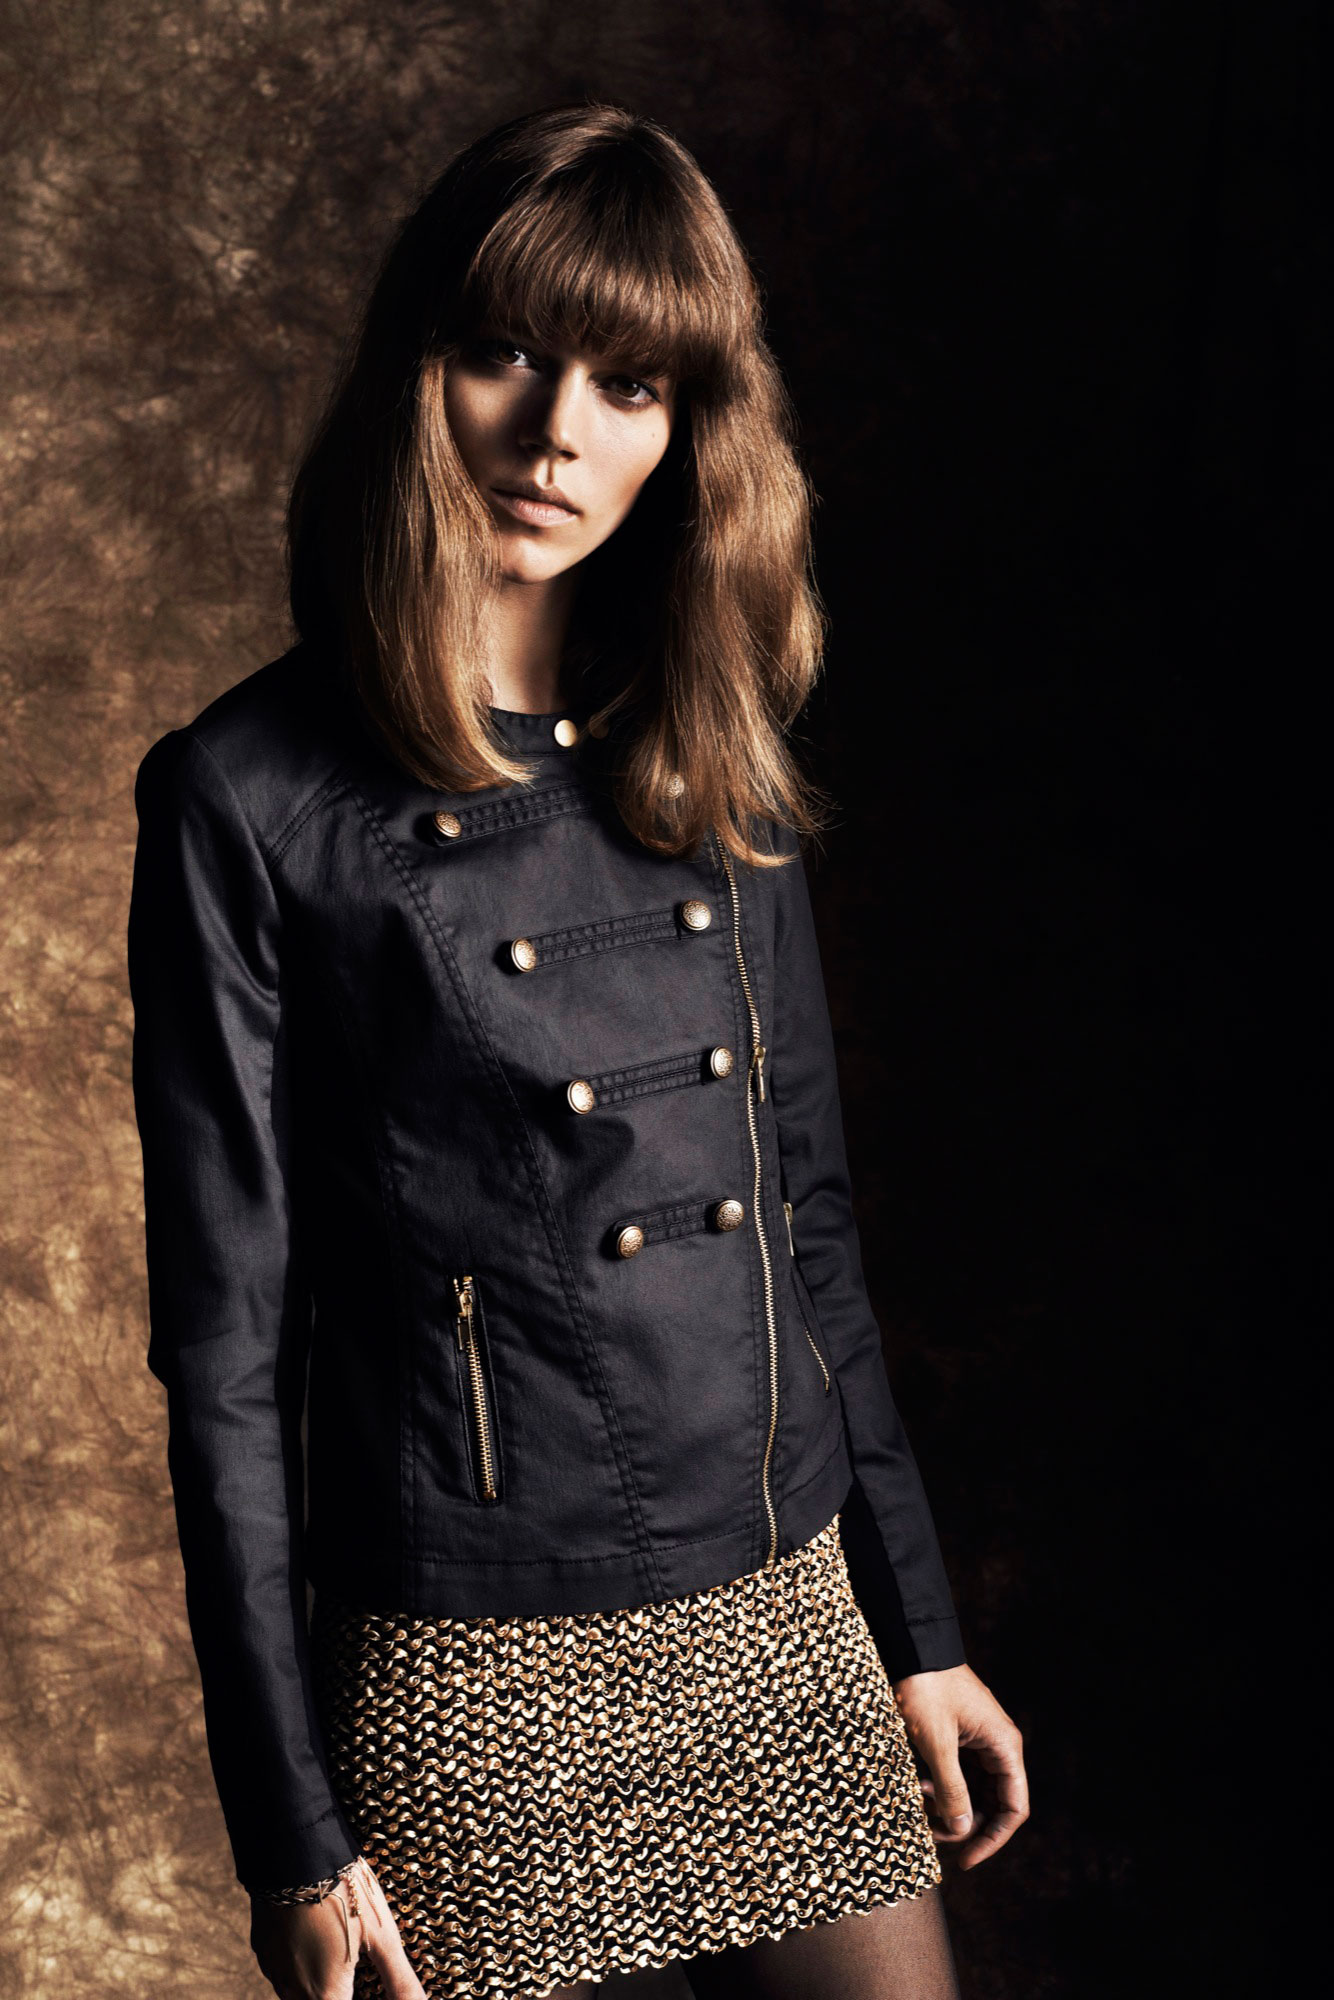 Trendy Reserved A/W 2013-2014 Woman